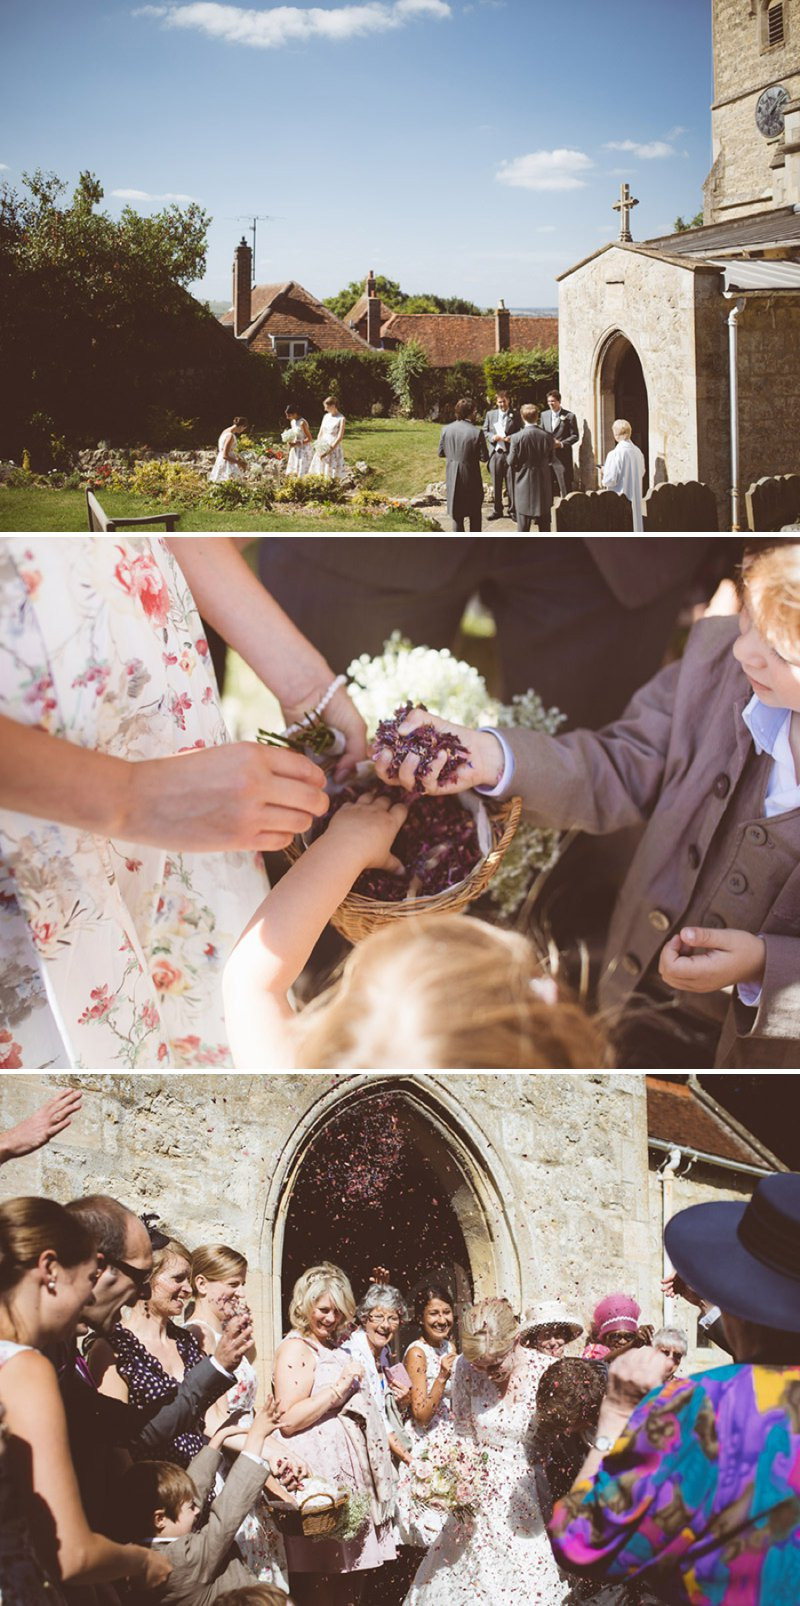 Rustic Wedding At Creslow Manor With Bride In Lace Paloma Blanca Gown With Groom In Morning Dress And Bridesmaids In Floral Print Dresses And Roses And Gypsophila In Bouquets Images By Joseph Hall 6